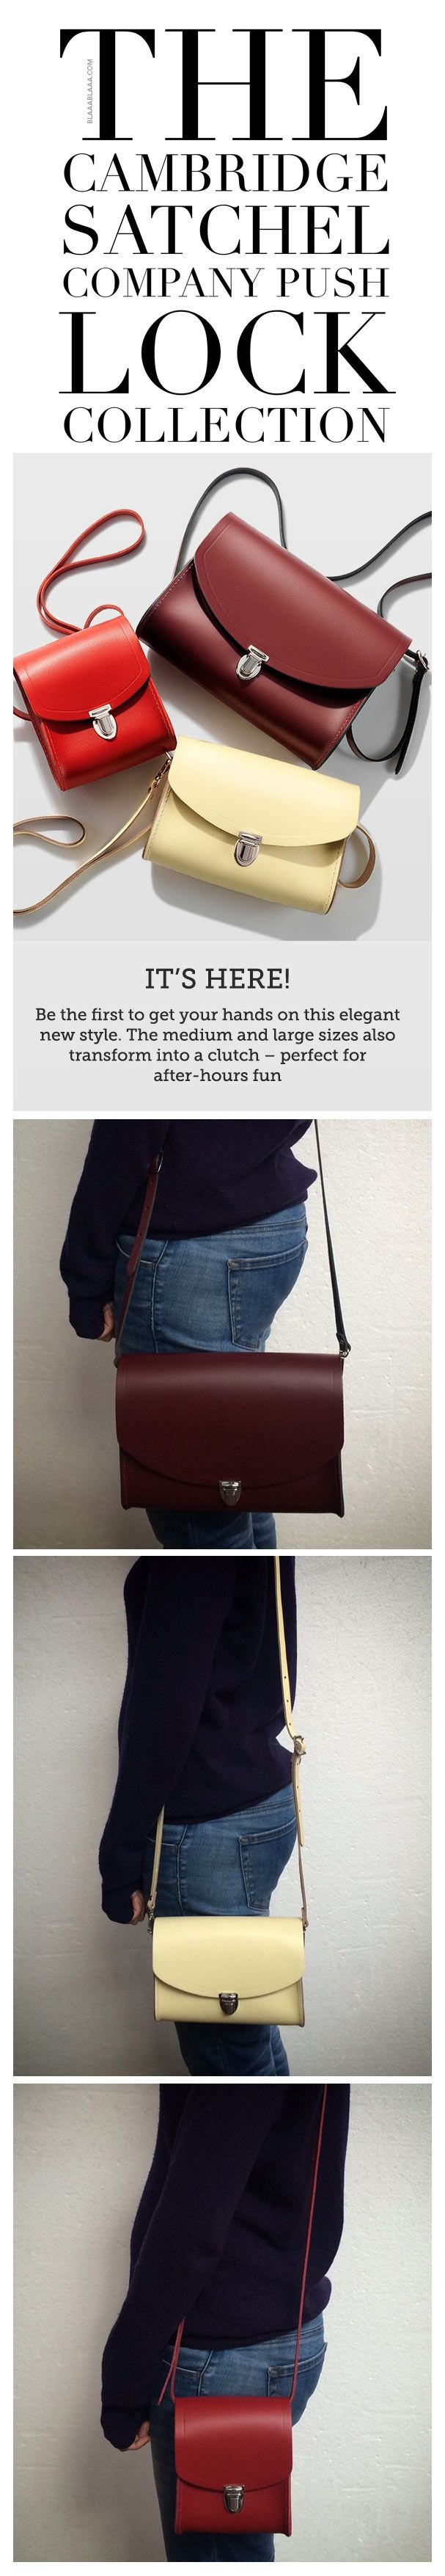 ~The Cambridge Satchel Company NEW Push Lock Collection   House of Beccaria